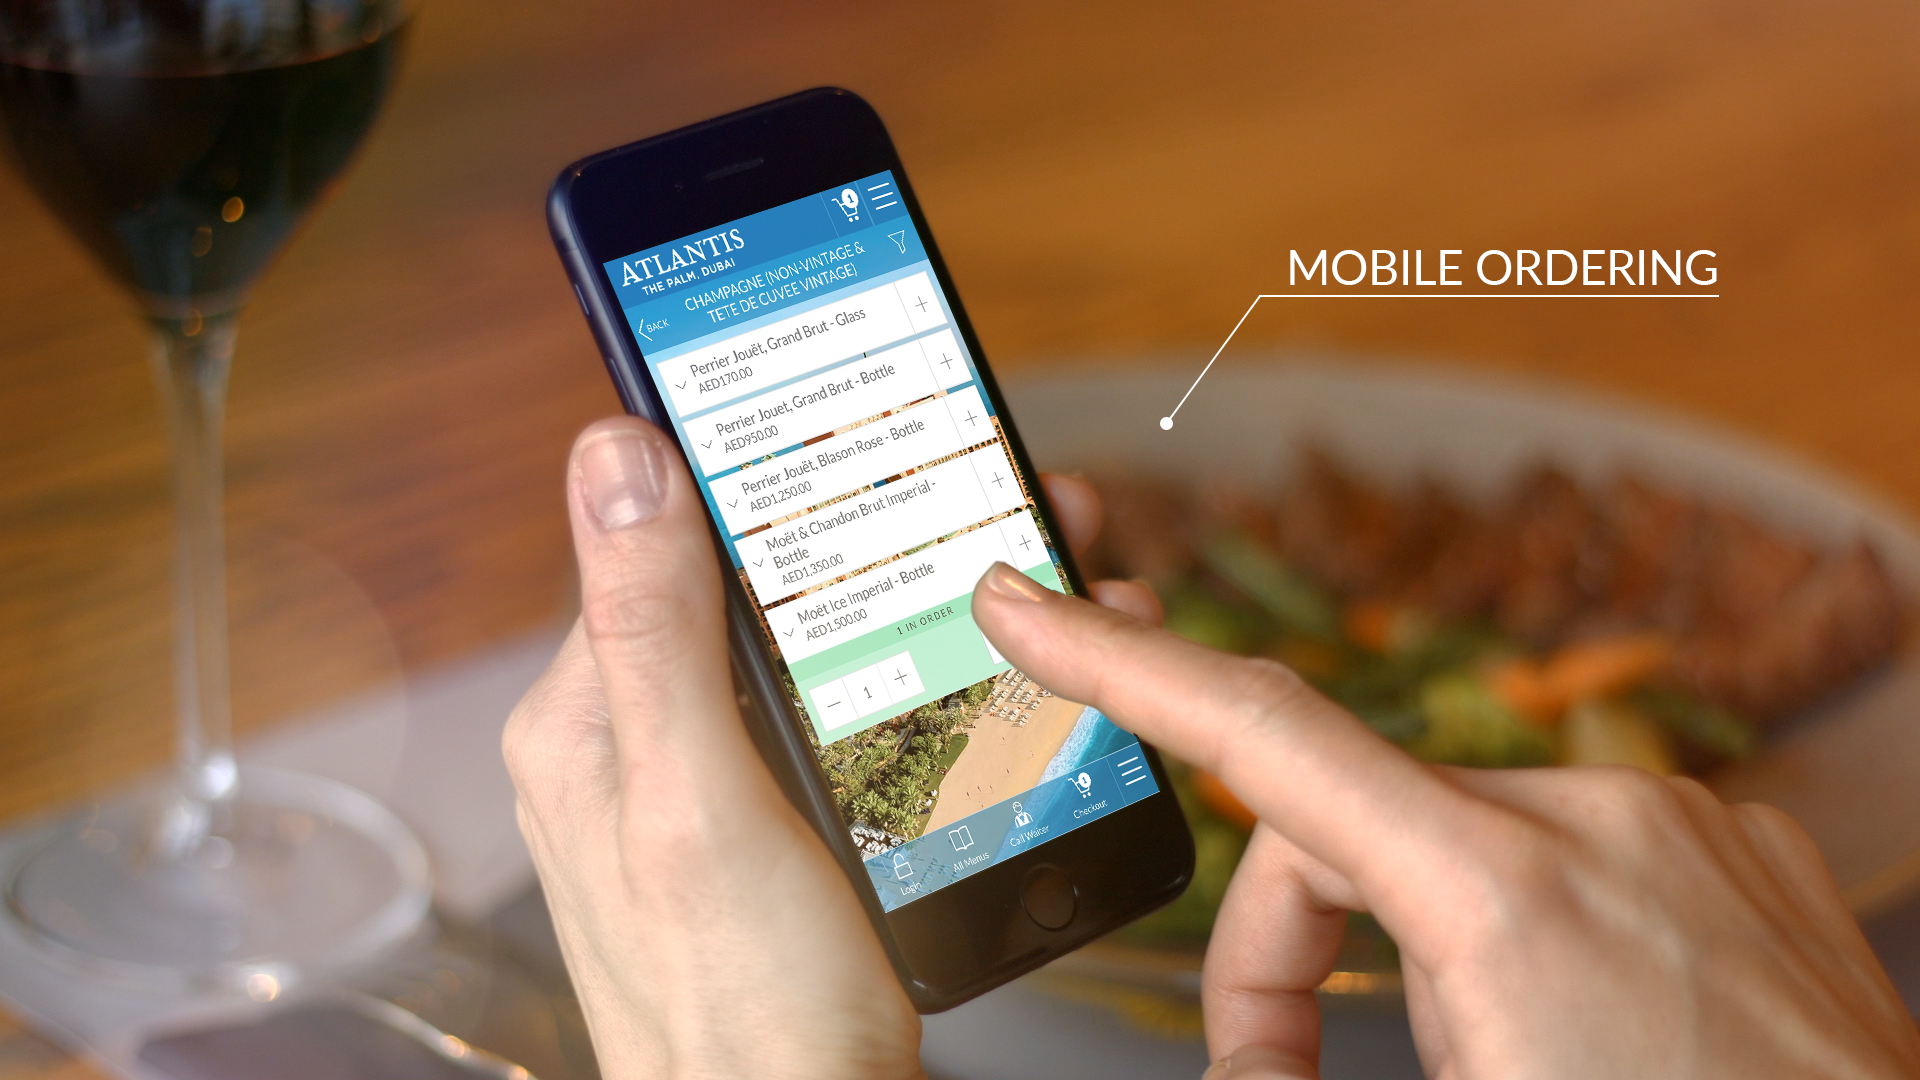 What is web-based mobile ordering?